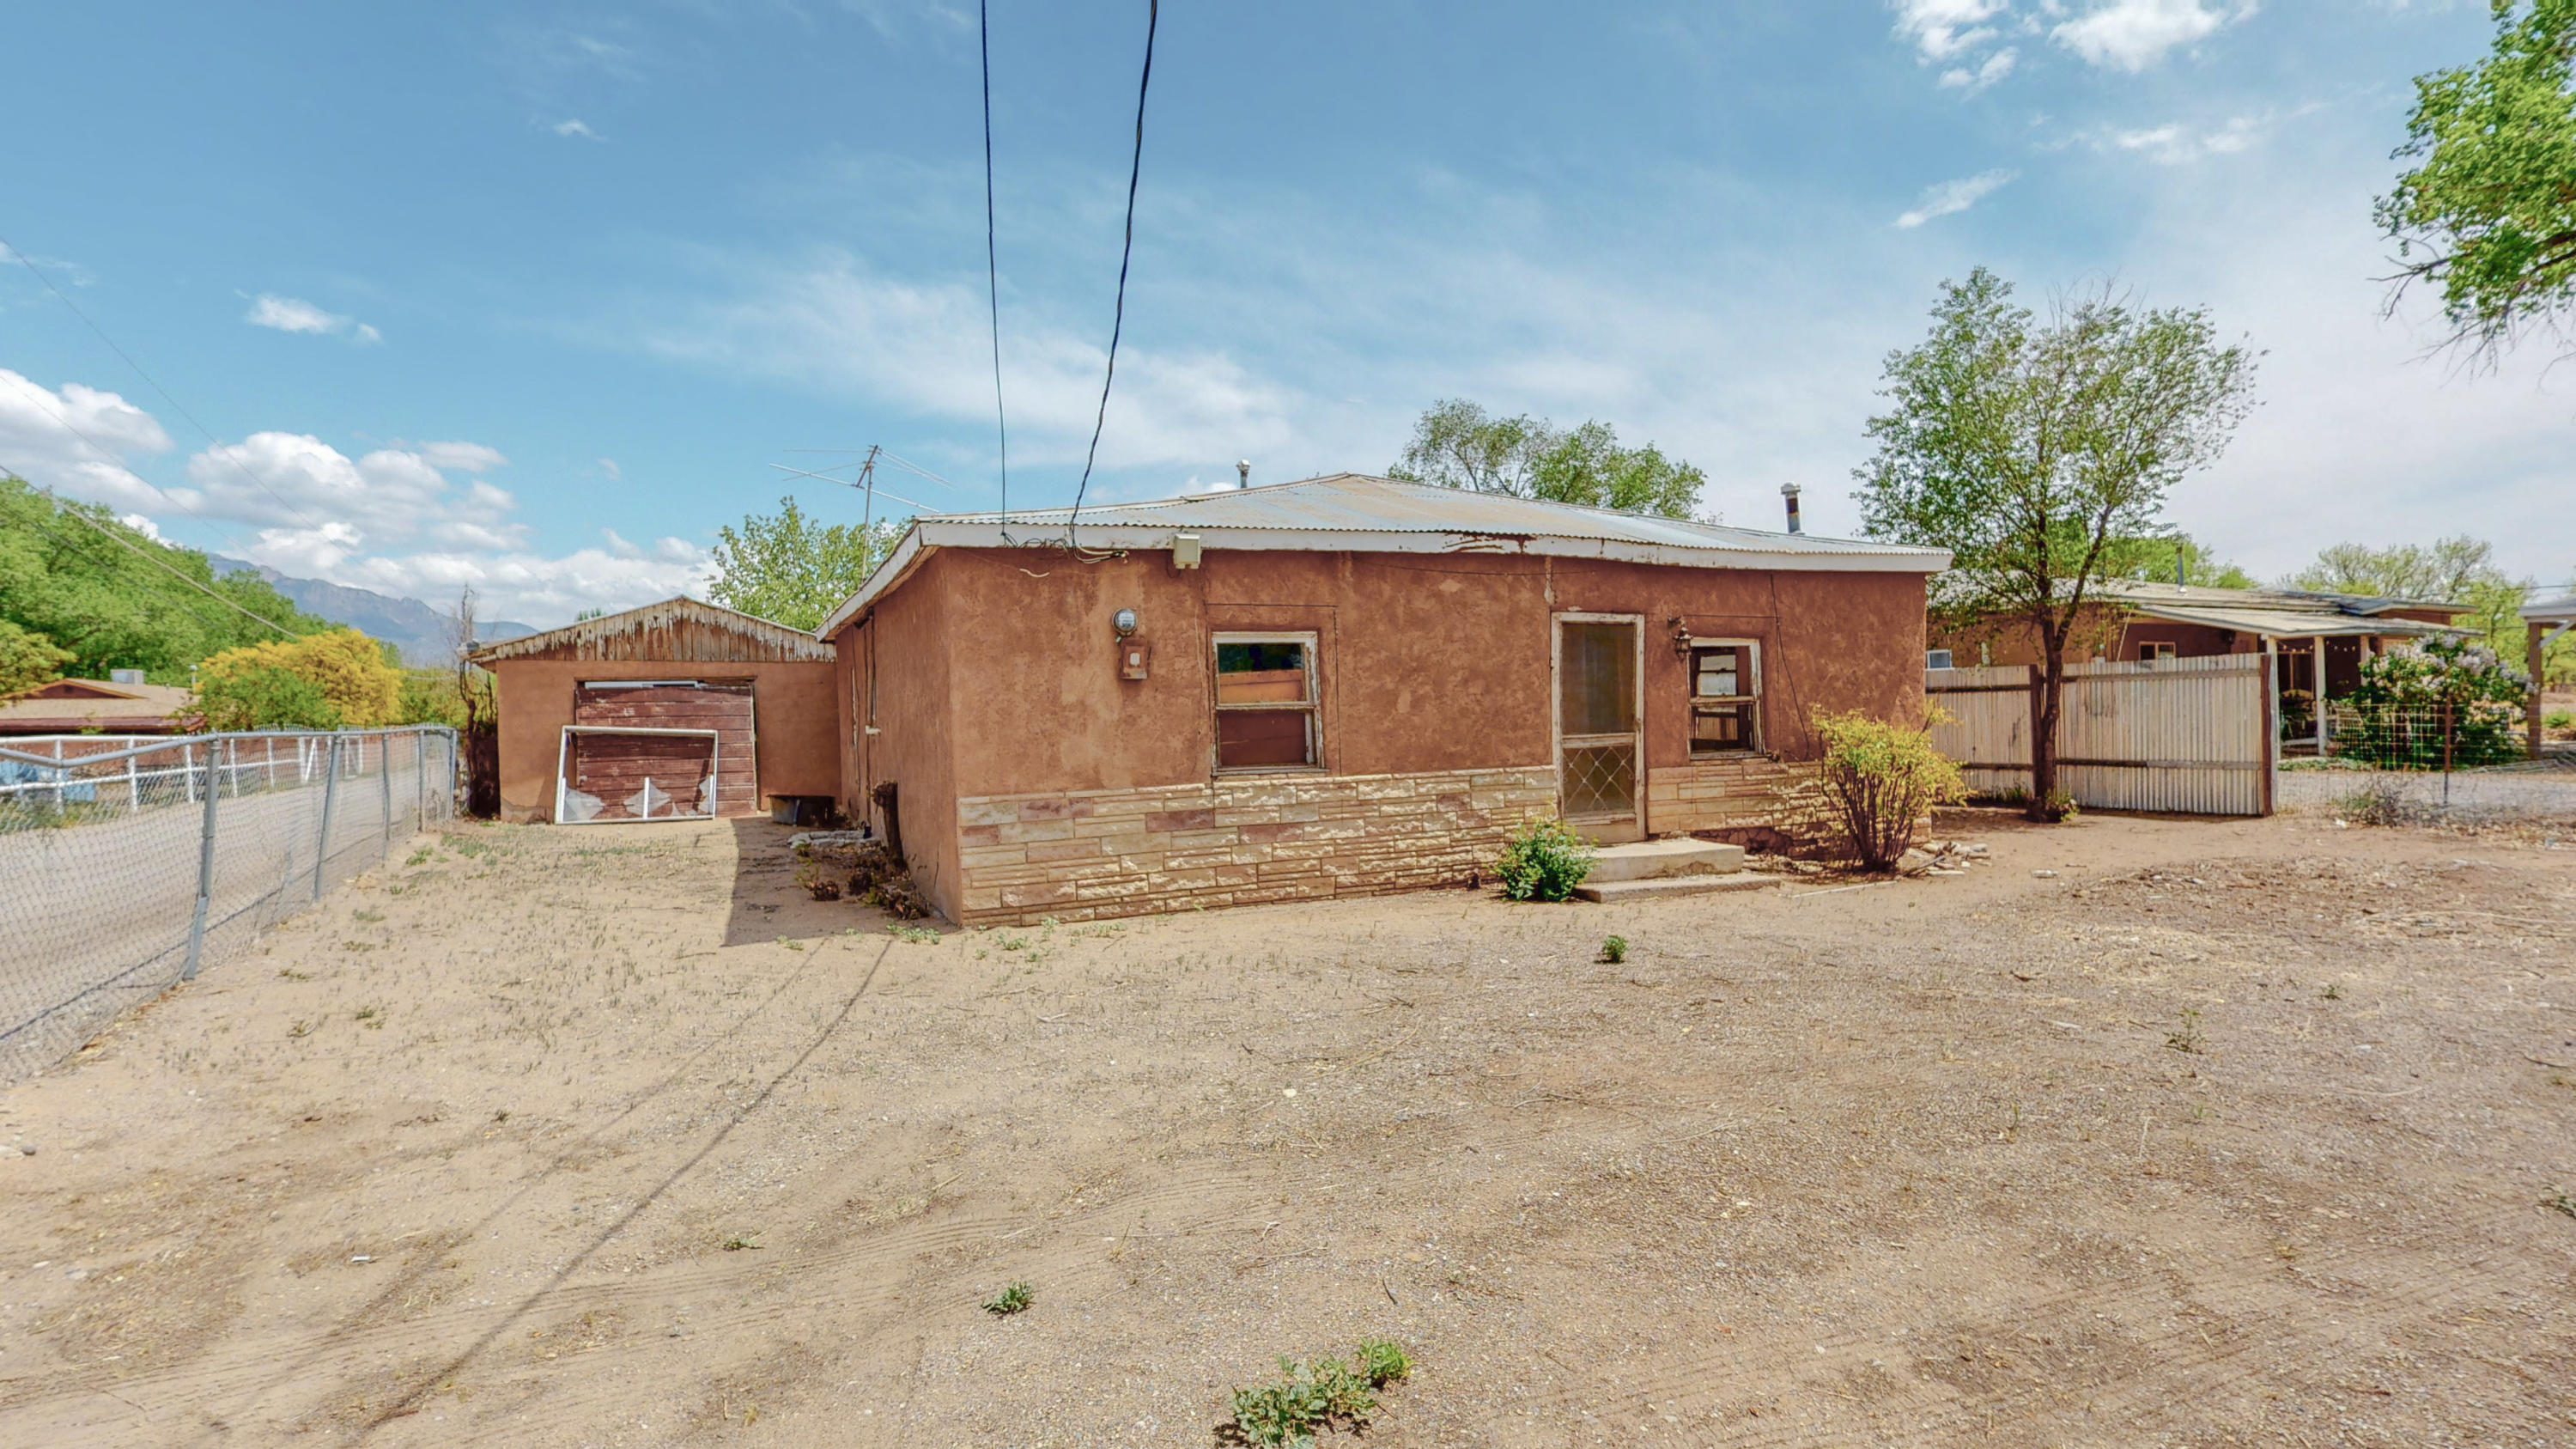 Diamond in the rough!!! Imagine the possibilities! Restore this tin roof casita on the EAST side of Corrales Rd & turn it into a charming Airbnb!  Vigas, wood floors & Mountain views off the back porch. OR, tear down the house & build a new home. Home is NOT HABITABLE. Enter at your own risk. NO CHILDREN are permitted during showings. There are big gaps in flooring from previous work that was started & not completed.   PLEASE NOTE - due to lot size, the Village limits new construction to the exact same footprint of the existing structures. You cannot make a two story.     PLEASE NOTE - due to lot size, there are limitations on type of  septic system.Buyer to conduct own research as to what can happen on this lot. Seller guarantees nothing.  Lot size estimated. CASH ONLY.  AS IS.